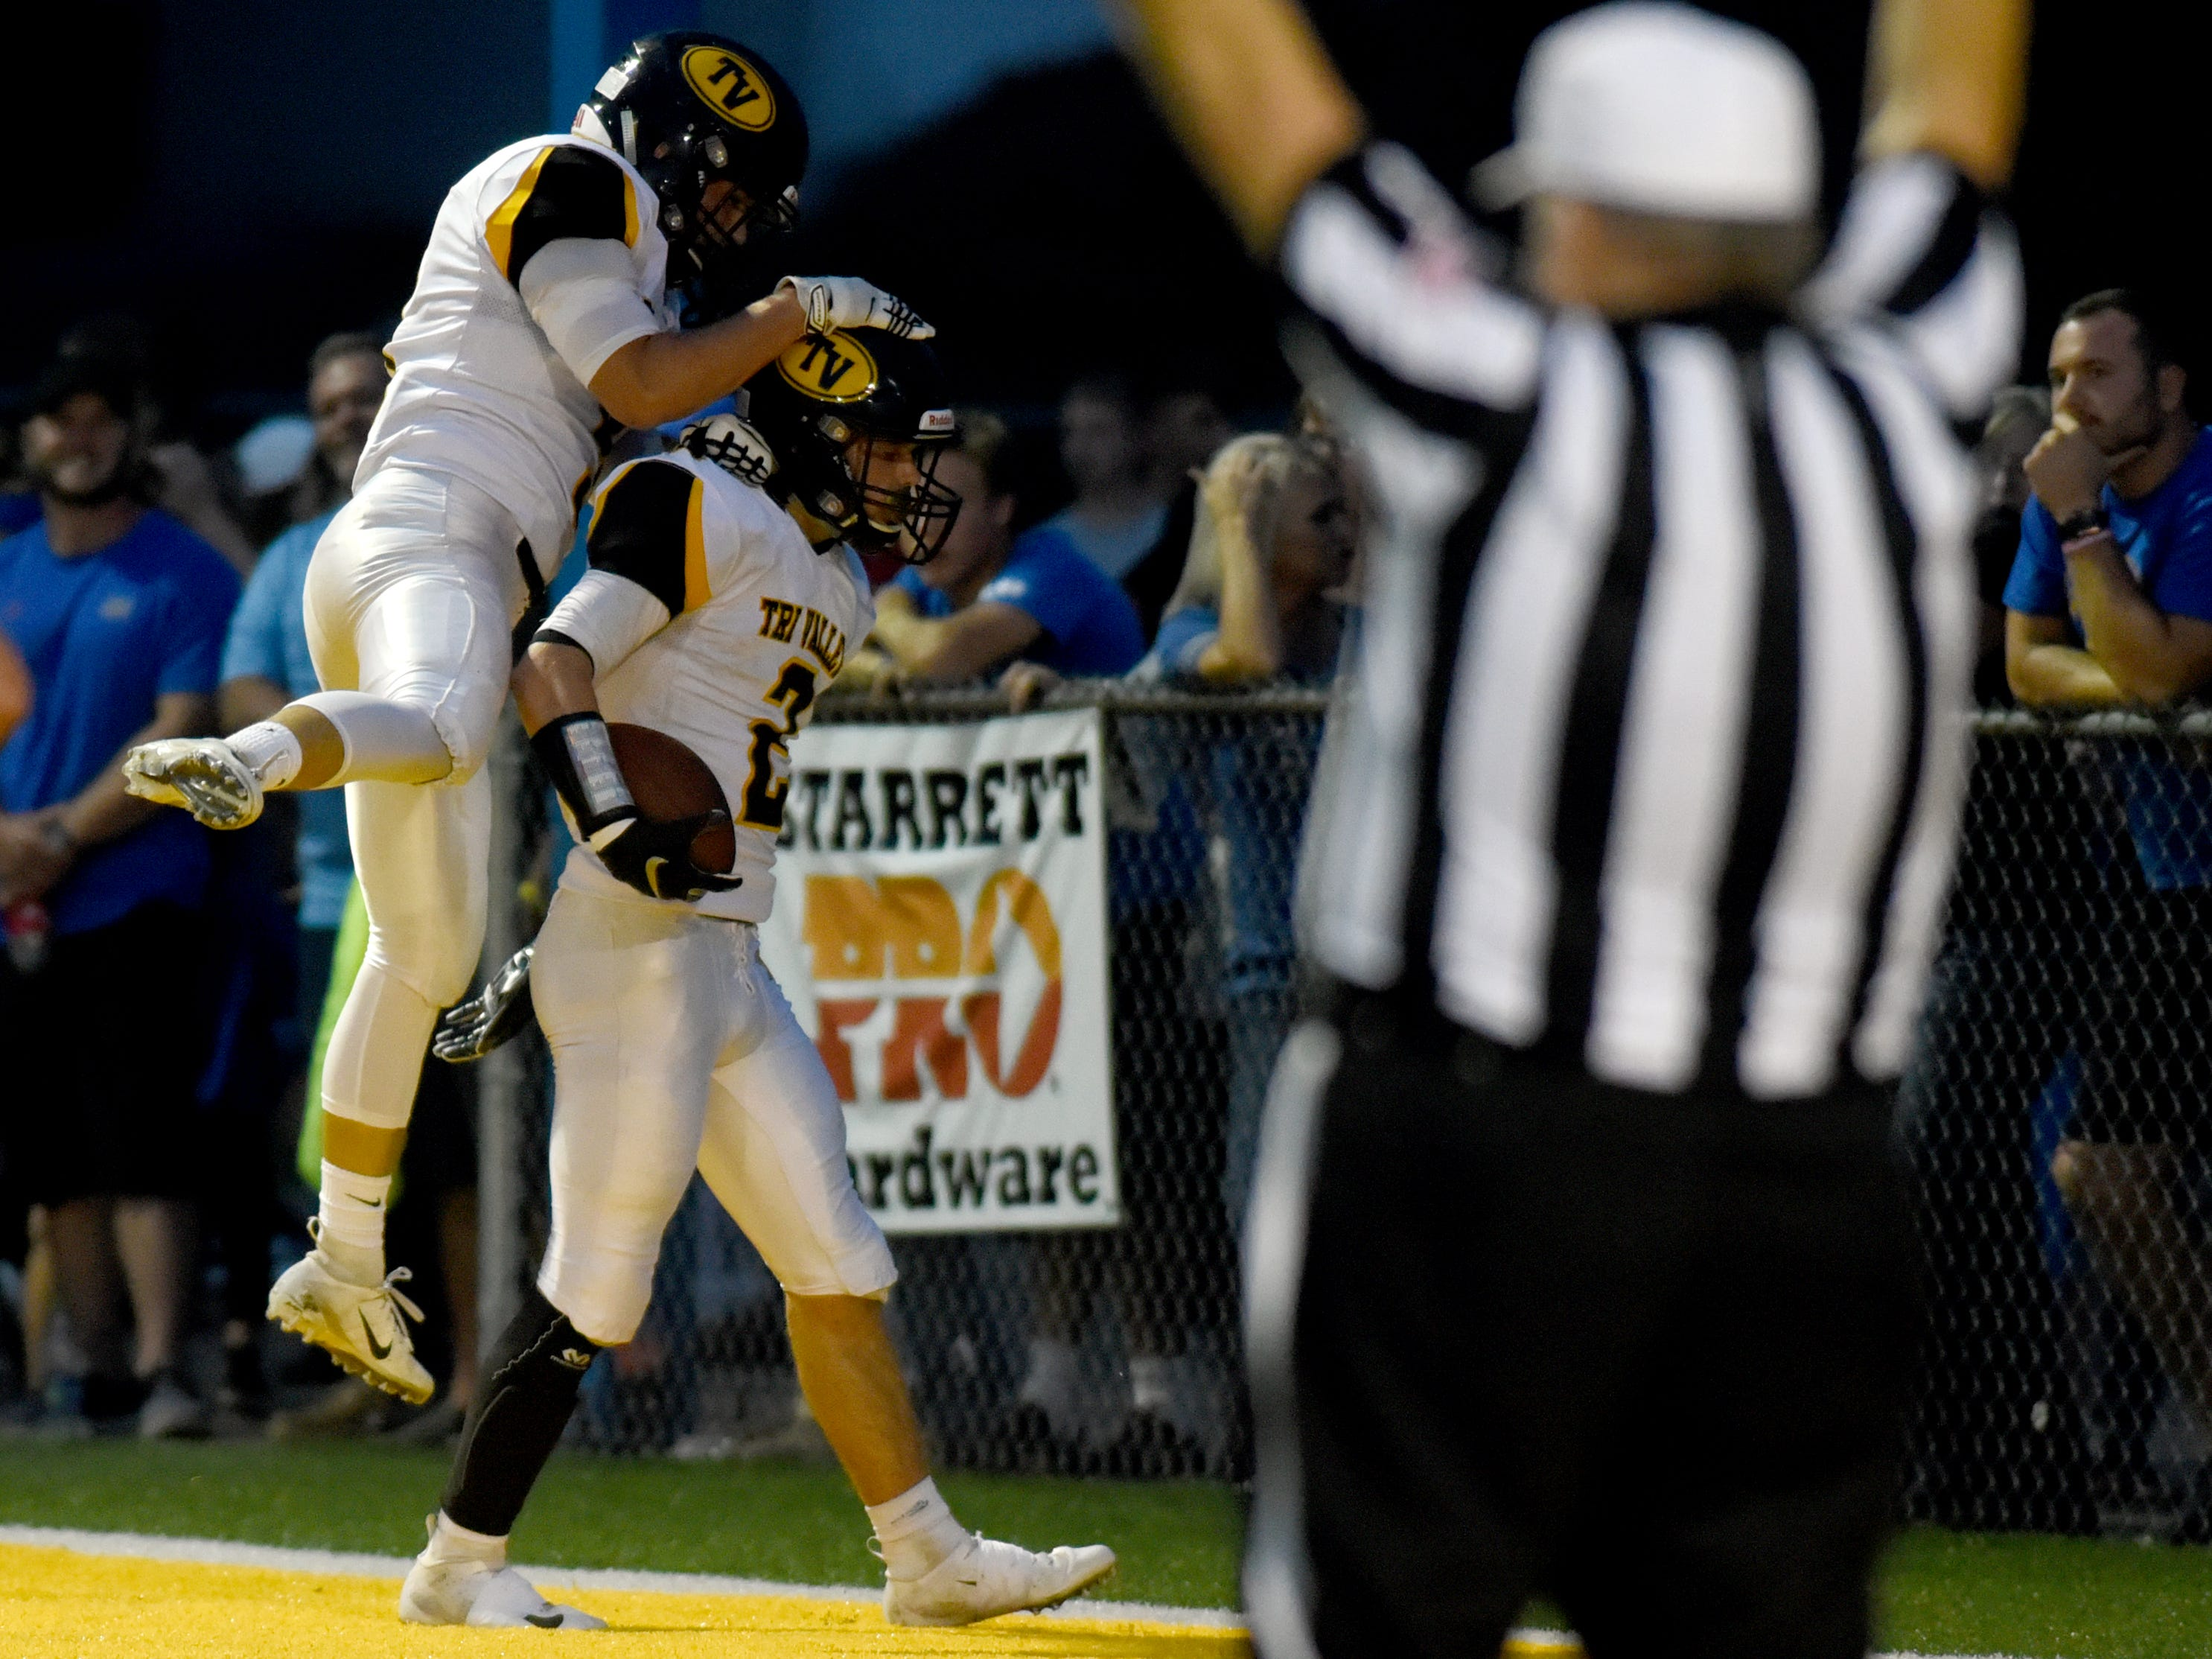 Tri-Valley's Blayze Taylor celebrates in the end zone after returning a punt for a touchdown in the second quarter against Philo on Friday night at Sam Hatfield Stadium. The Scotties won, 28-14, to remain unbeaten.